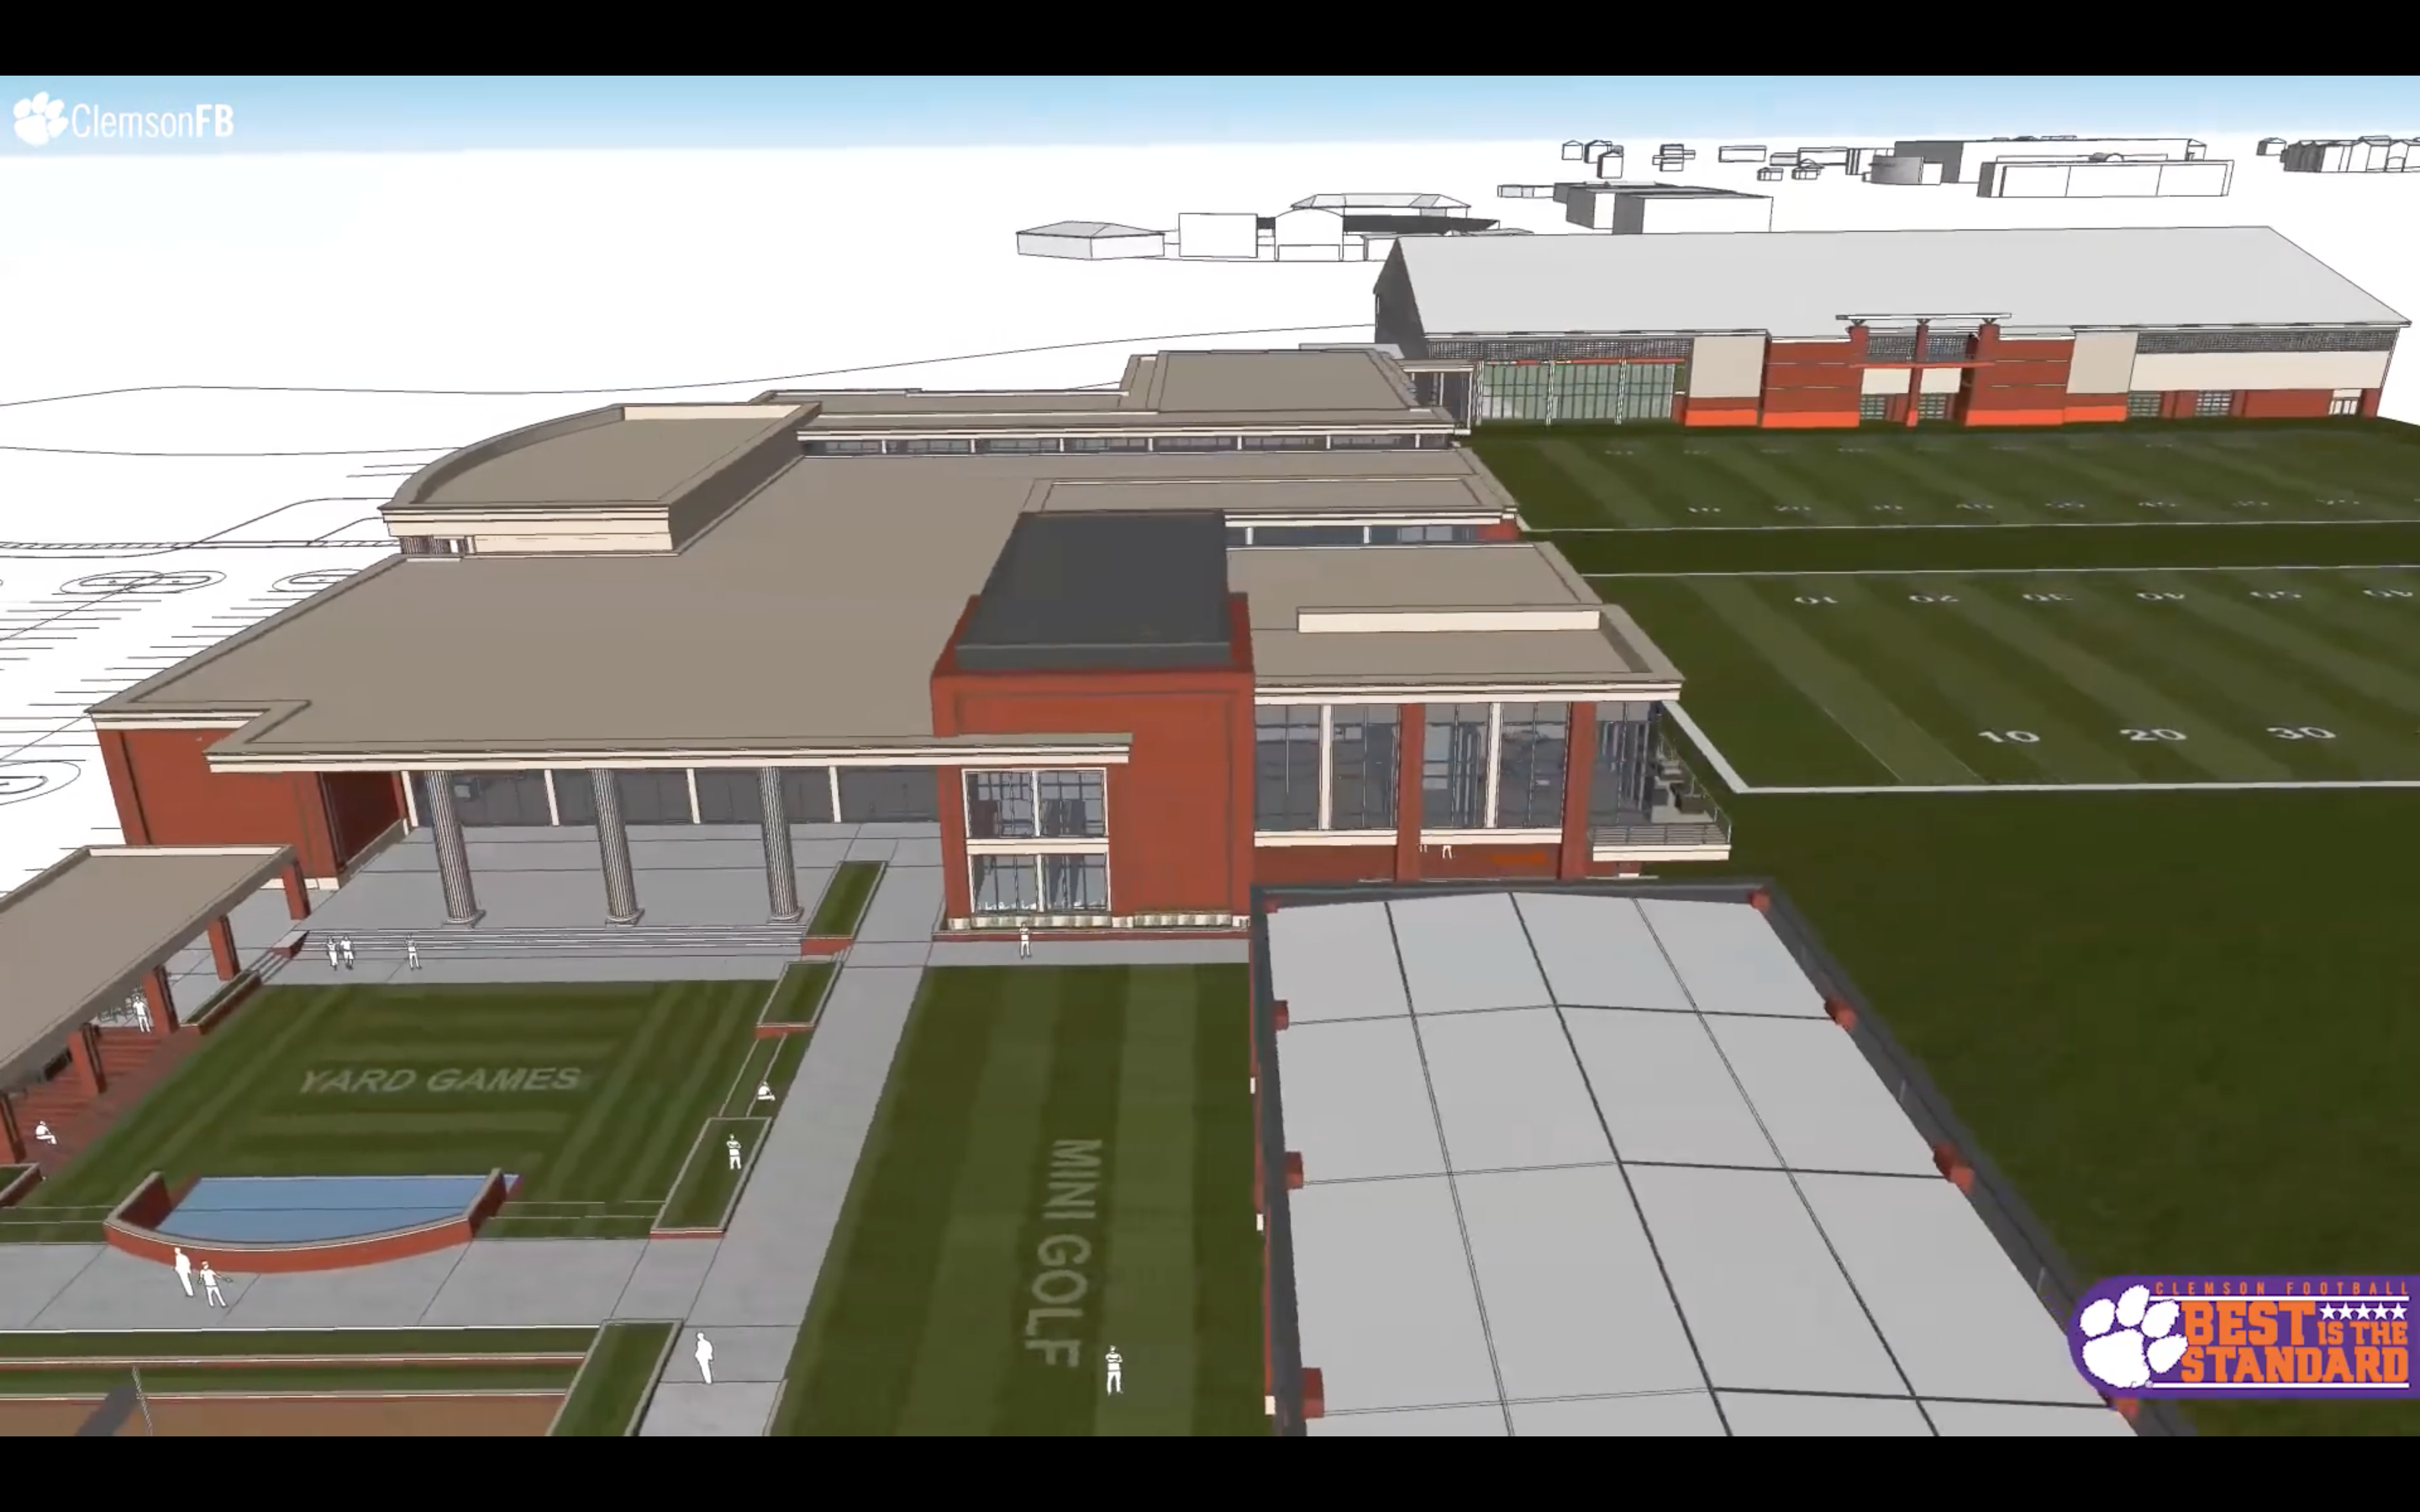 Preview of the new  Clemson football complex.